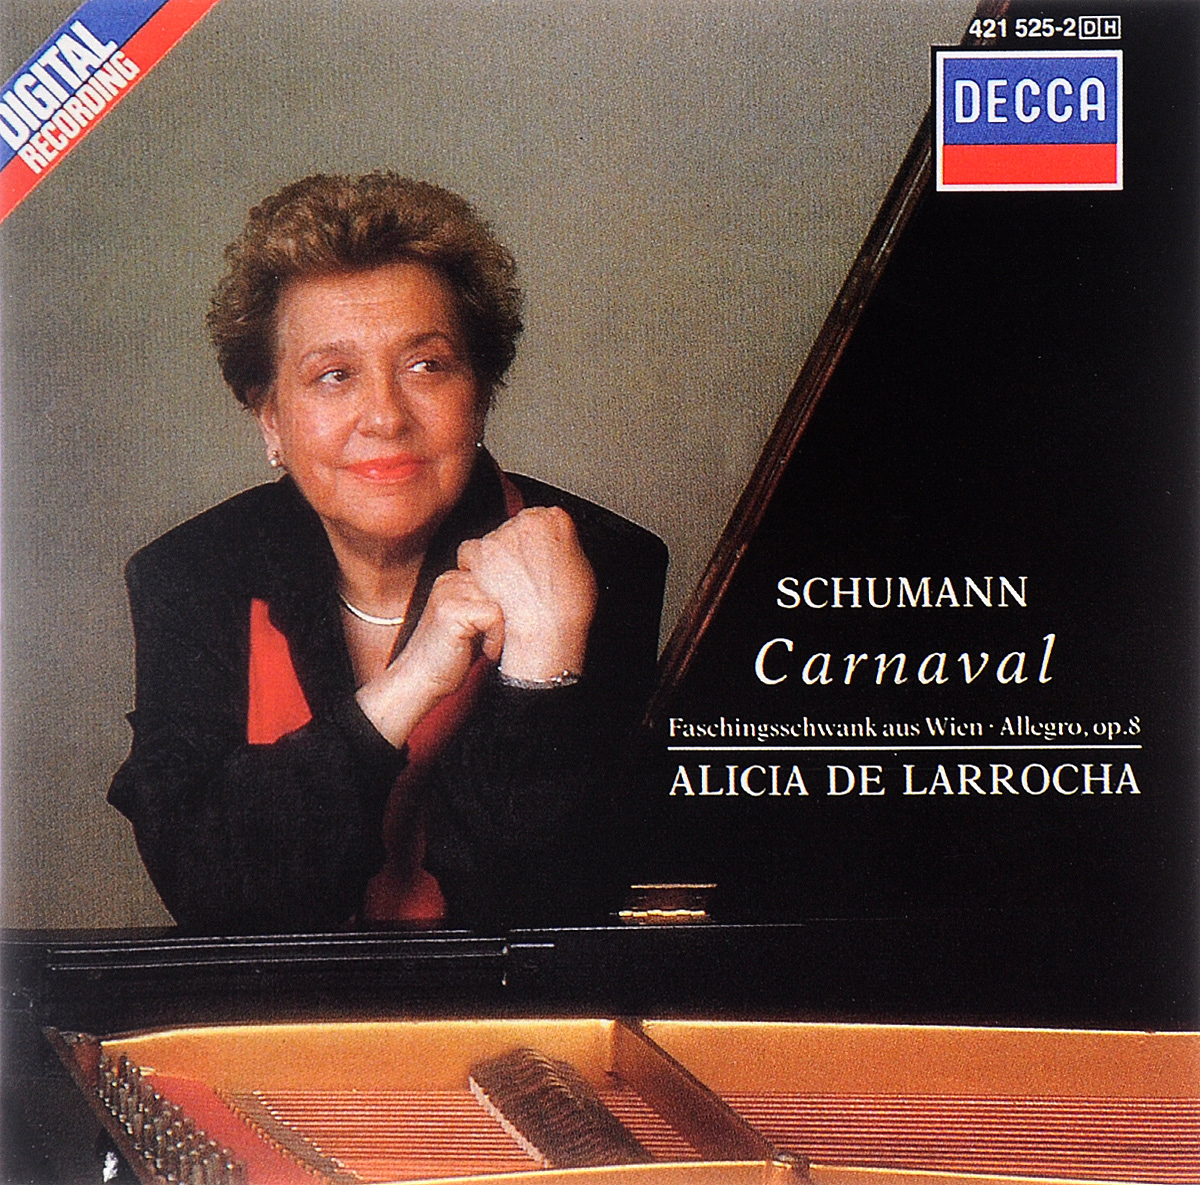 Алисия де Ларроча Alicia de Larrocha. Schumann. Carnaval / Faschingsschwank Aus Wien, Op. 26 / Allegro, Op. 8 алисия де ларроча chamber orchestra of the europe джордж солти london philharmonic orchestra mozart alicia de larrocha piano concertos 24 27 2 cd